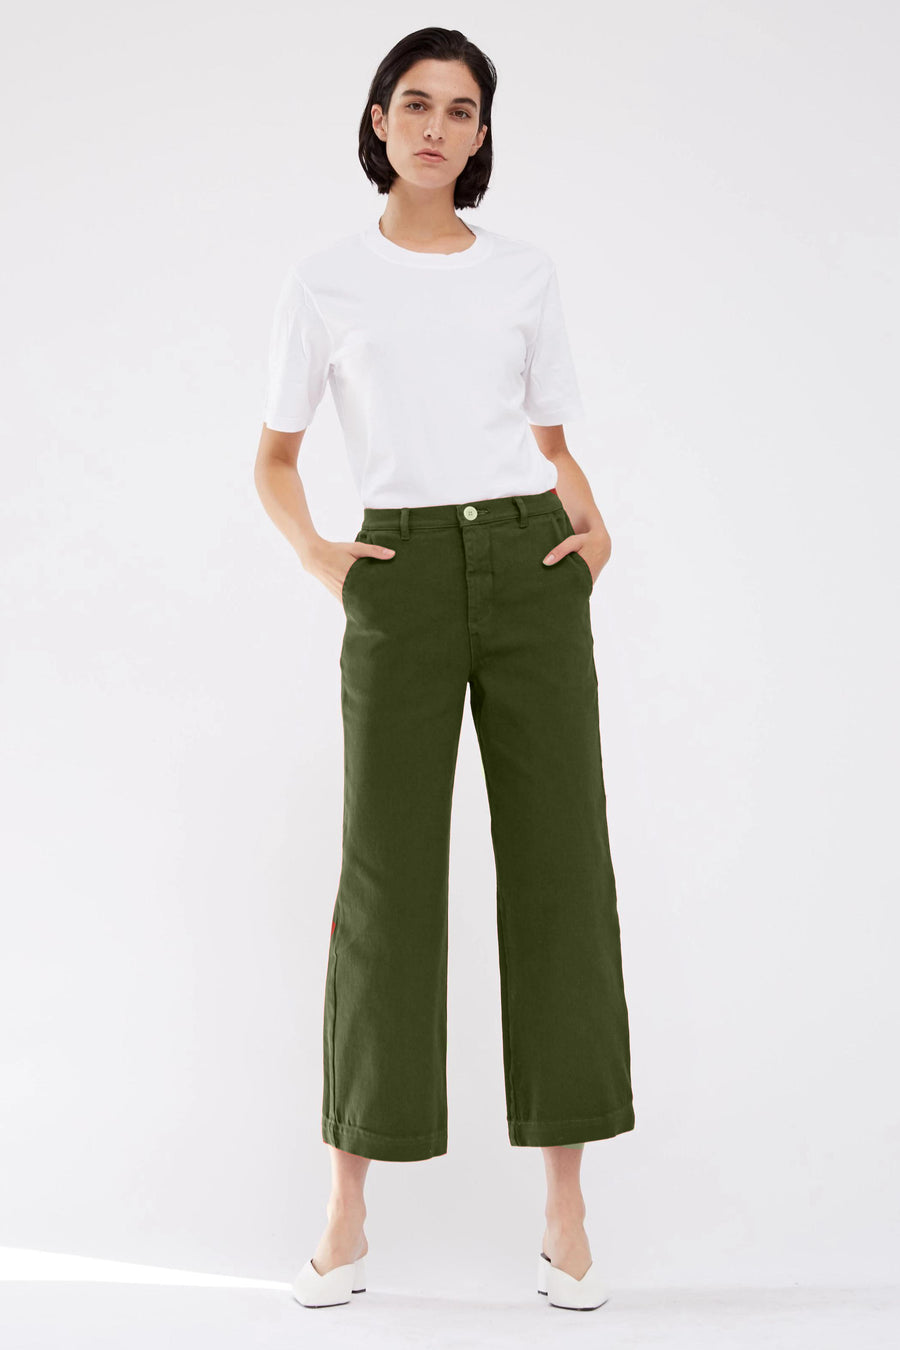 Bull Denim High Waisted Pant - Army Green